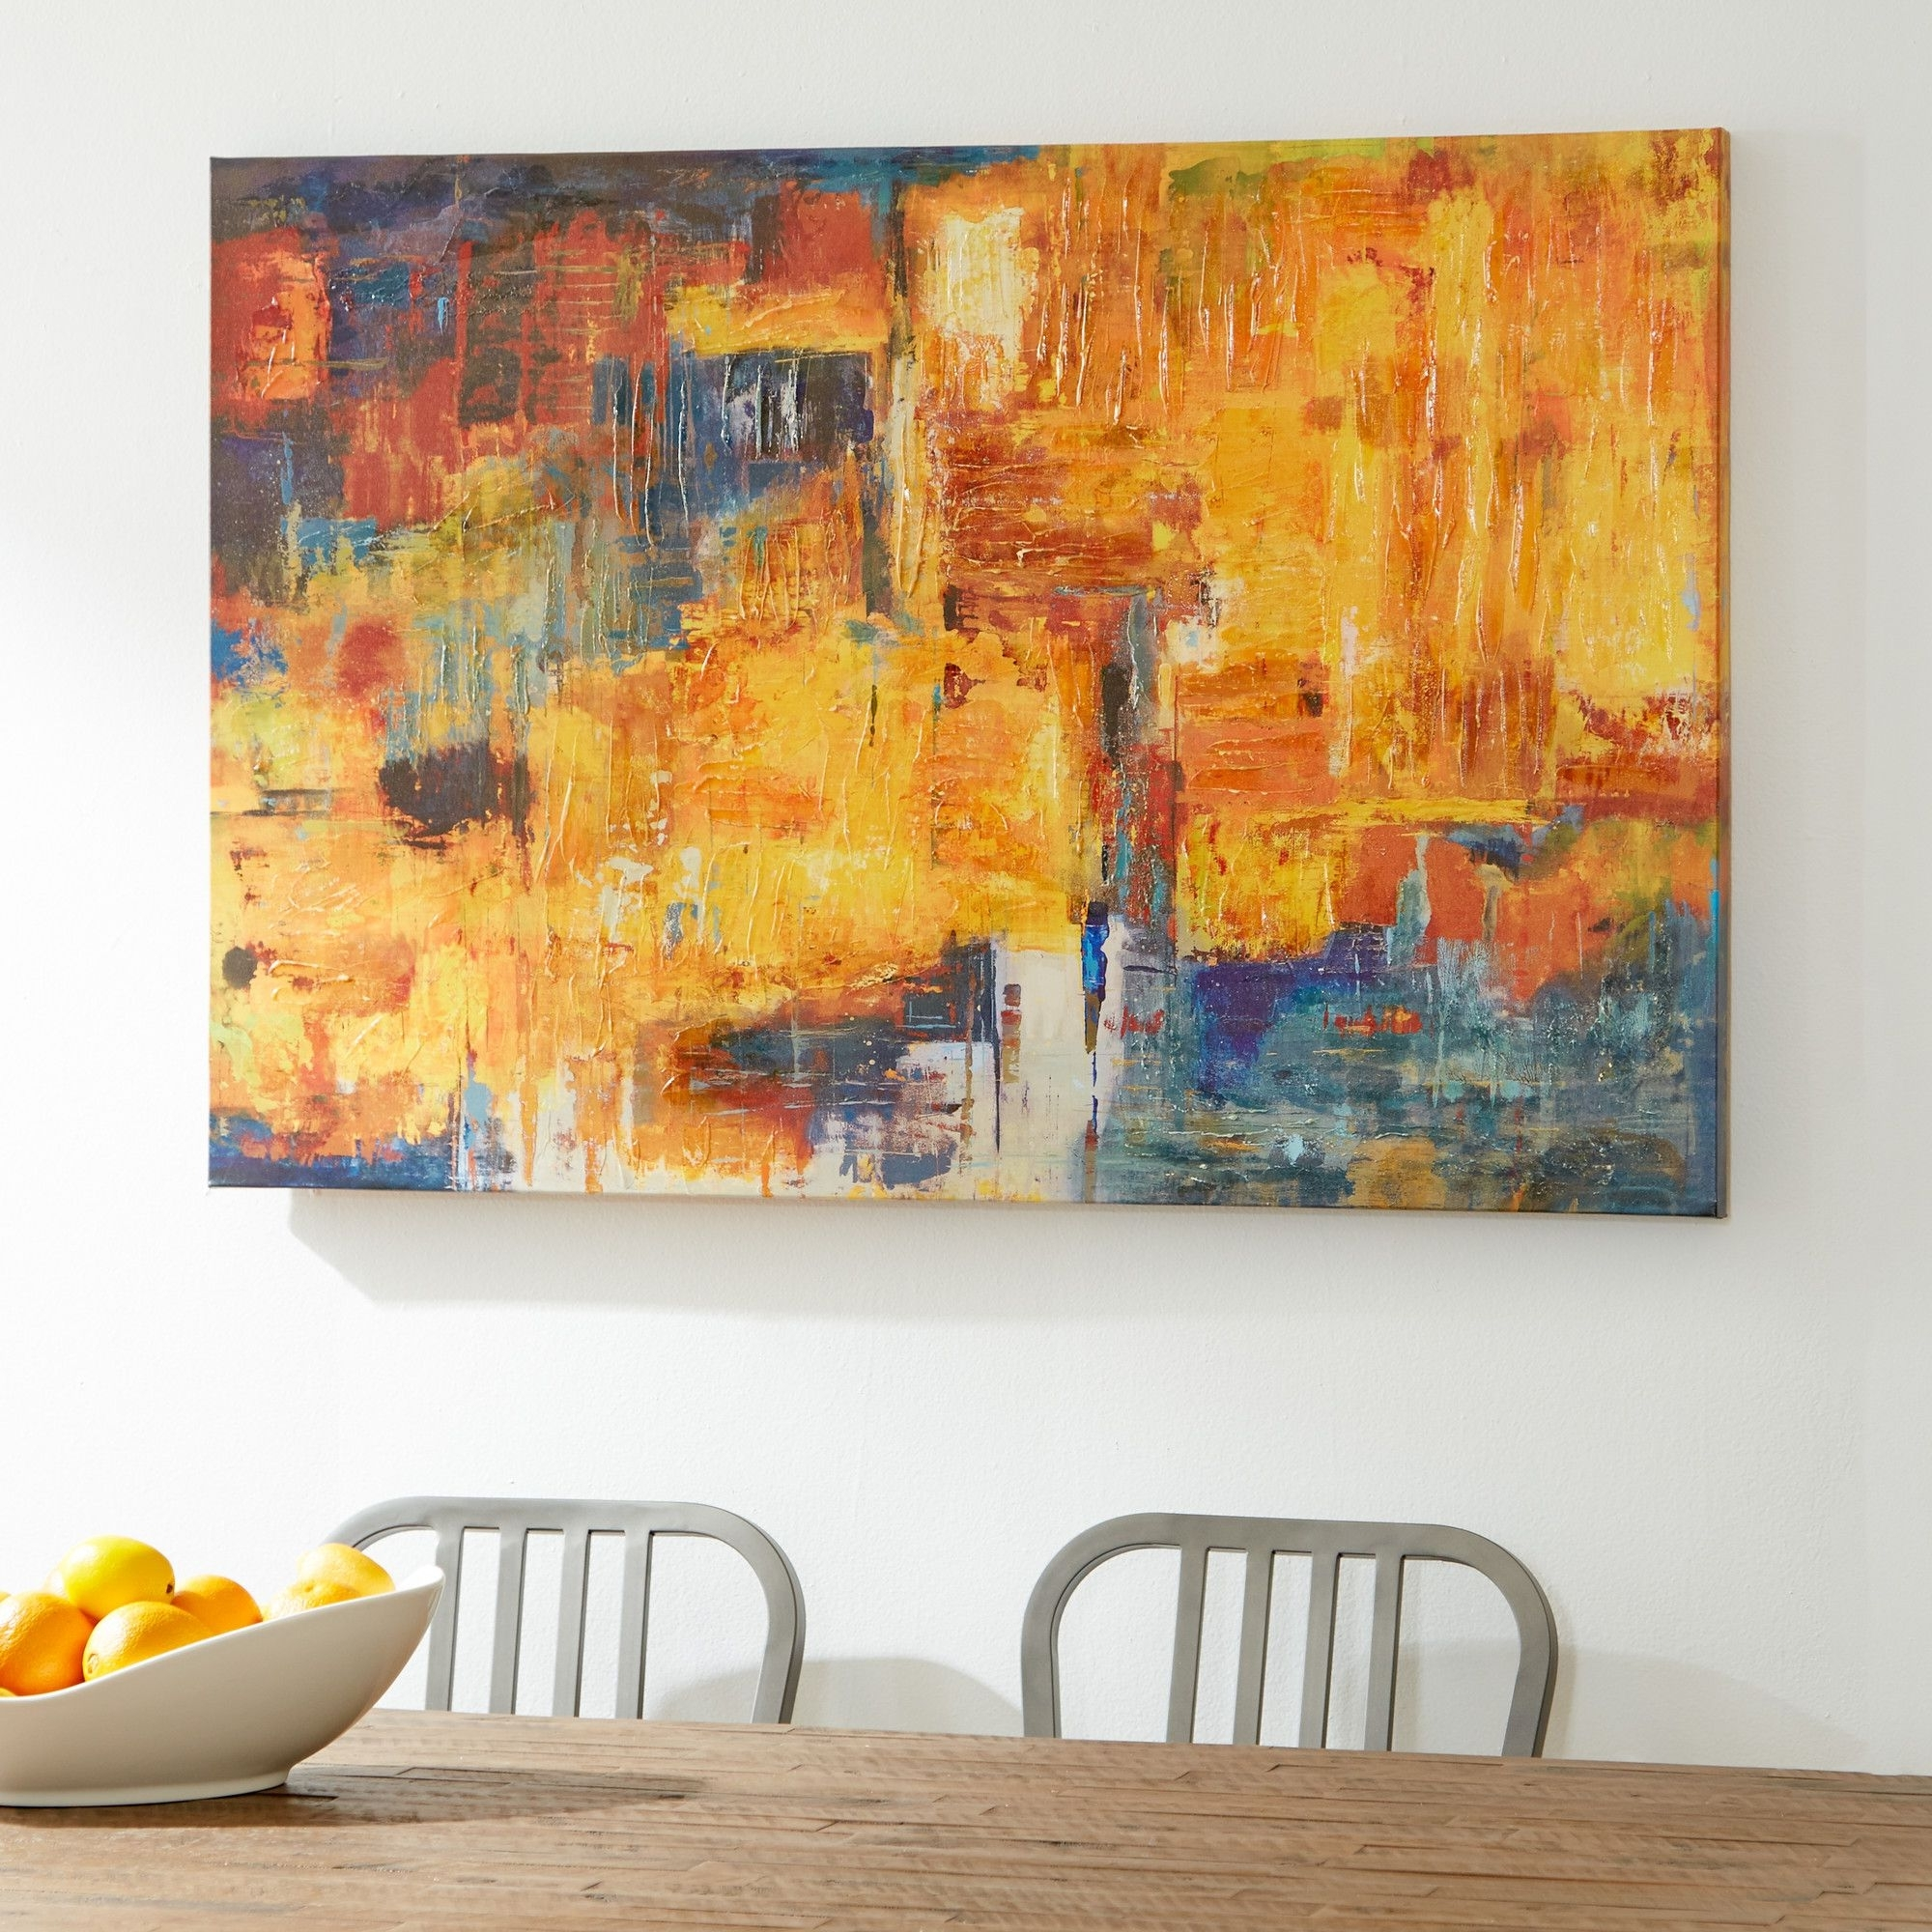 Wayfair – Online Home Store For Furniture, Decor, Outdoors Throughout Most Up To Date Wayfair Wall Art (View 11 of 15)